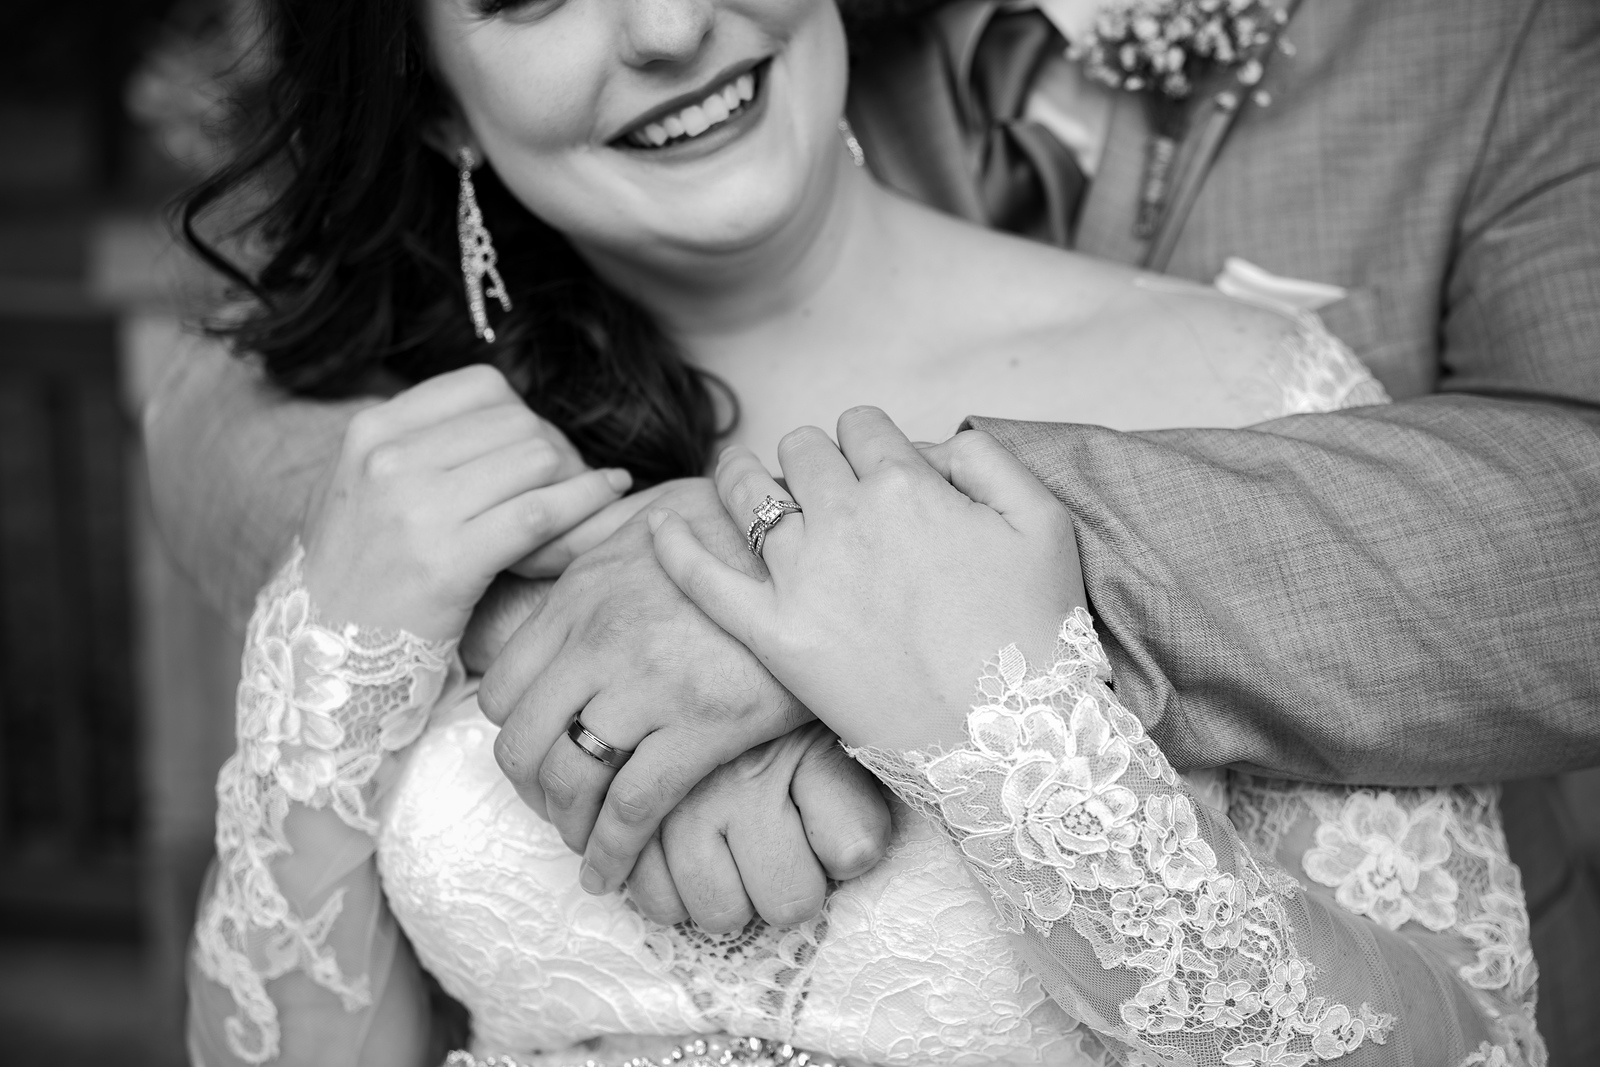 black and white photo focused on the hands and rings of a newlywed couple, the grooms arms around the bride